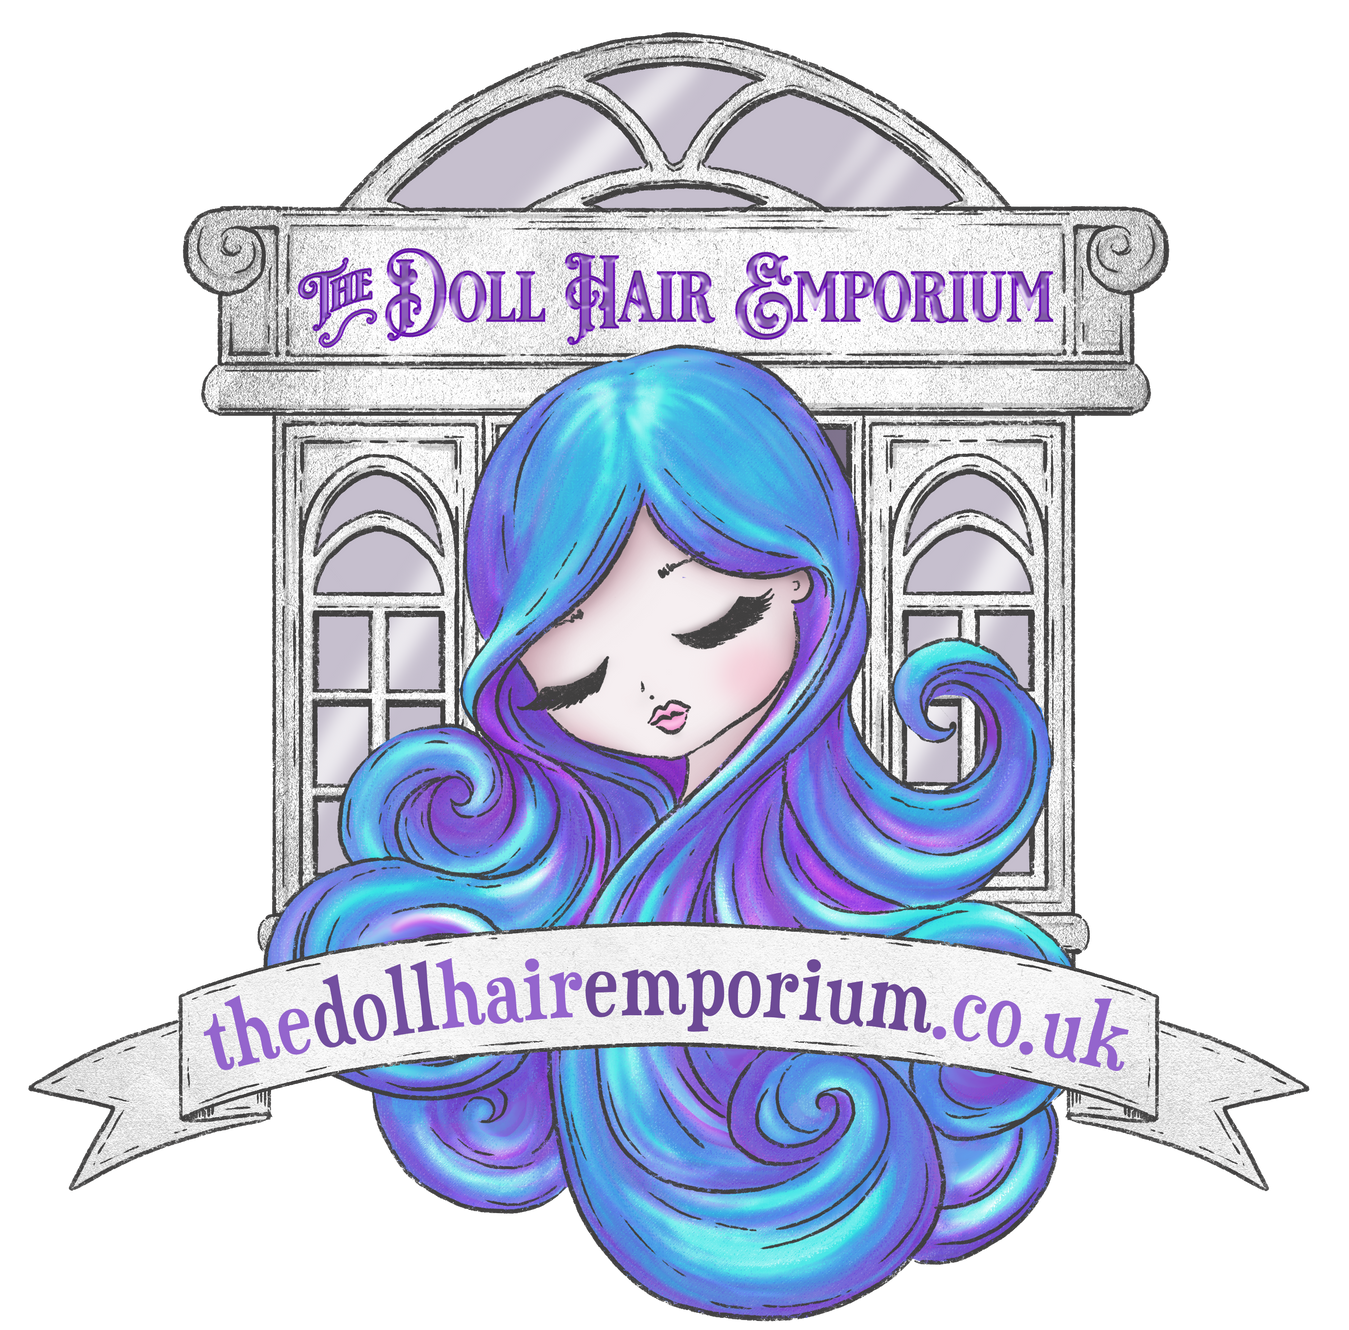 www.thedollhairemporium.co.uk